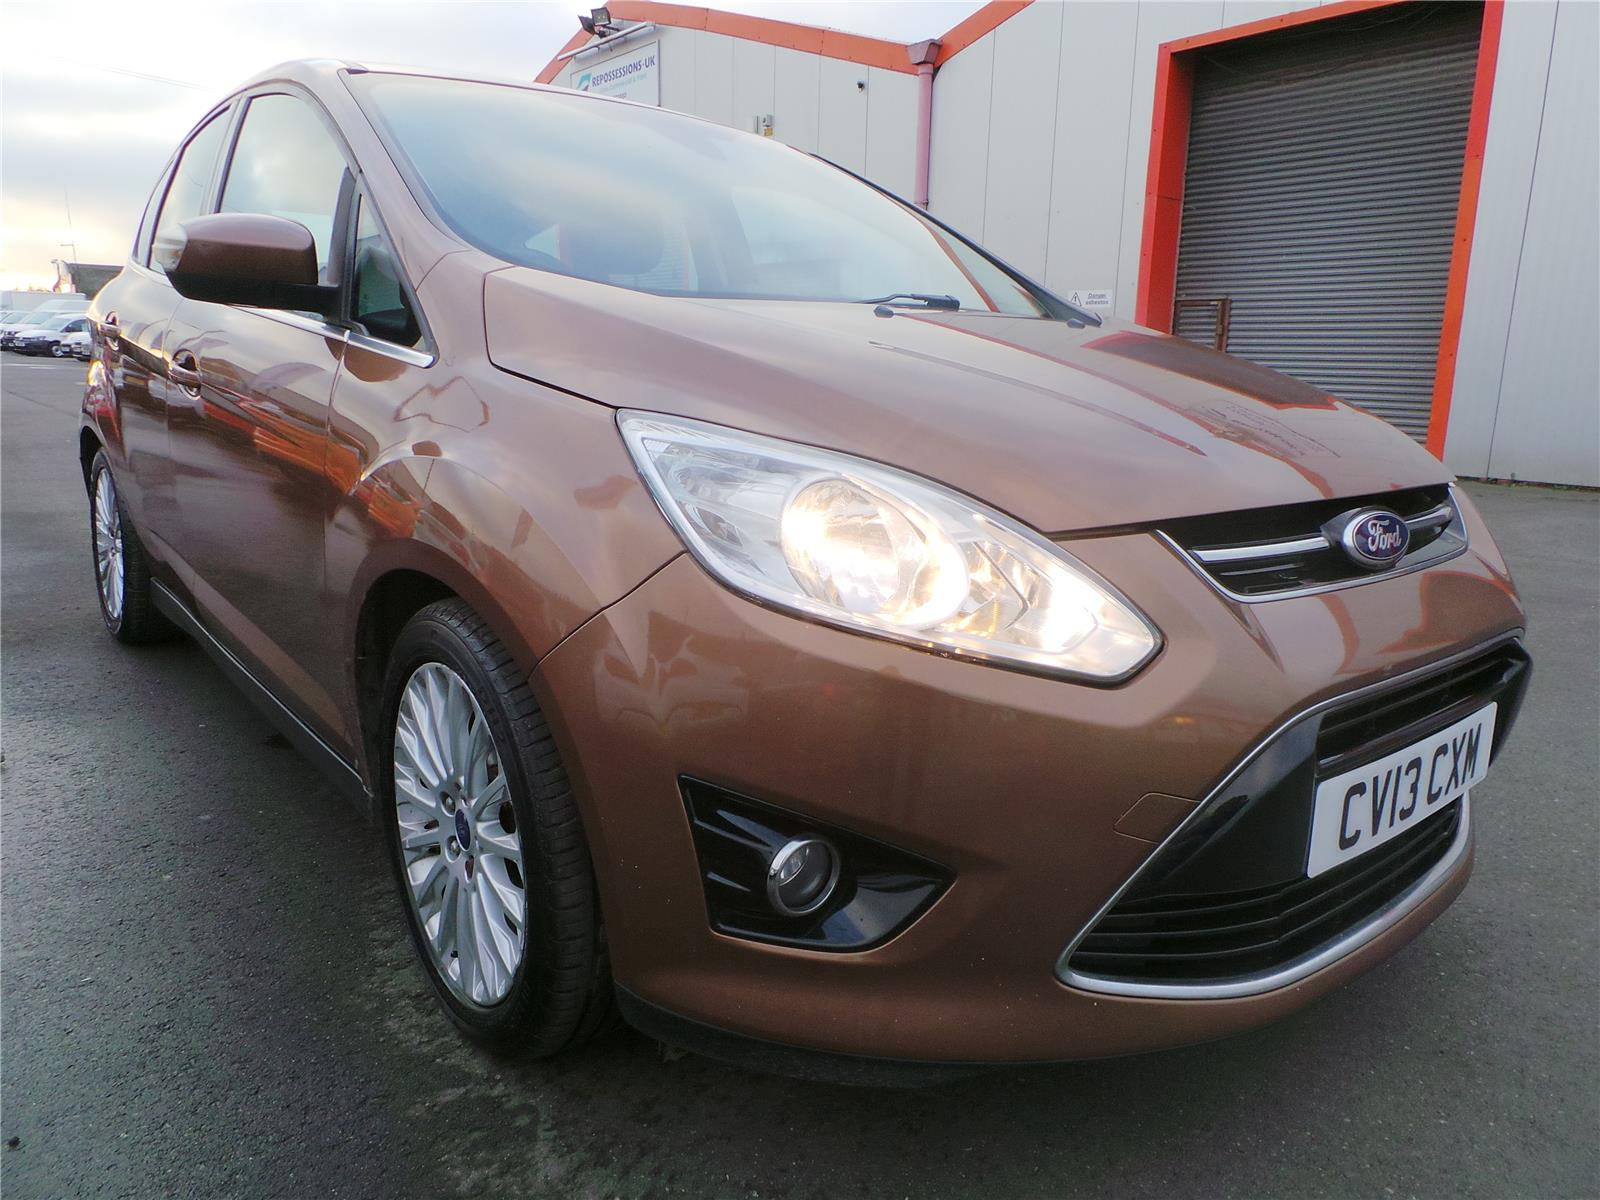 2013 FORD C-MAX TITANIUM TDCI 1560 DIESEL MANUAL 6 Speed 5 DOOR MPV